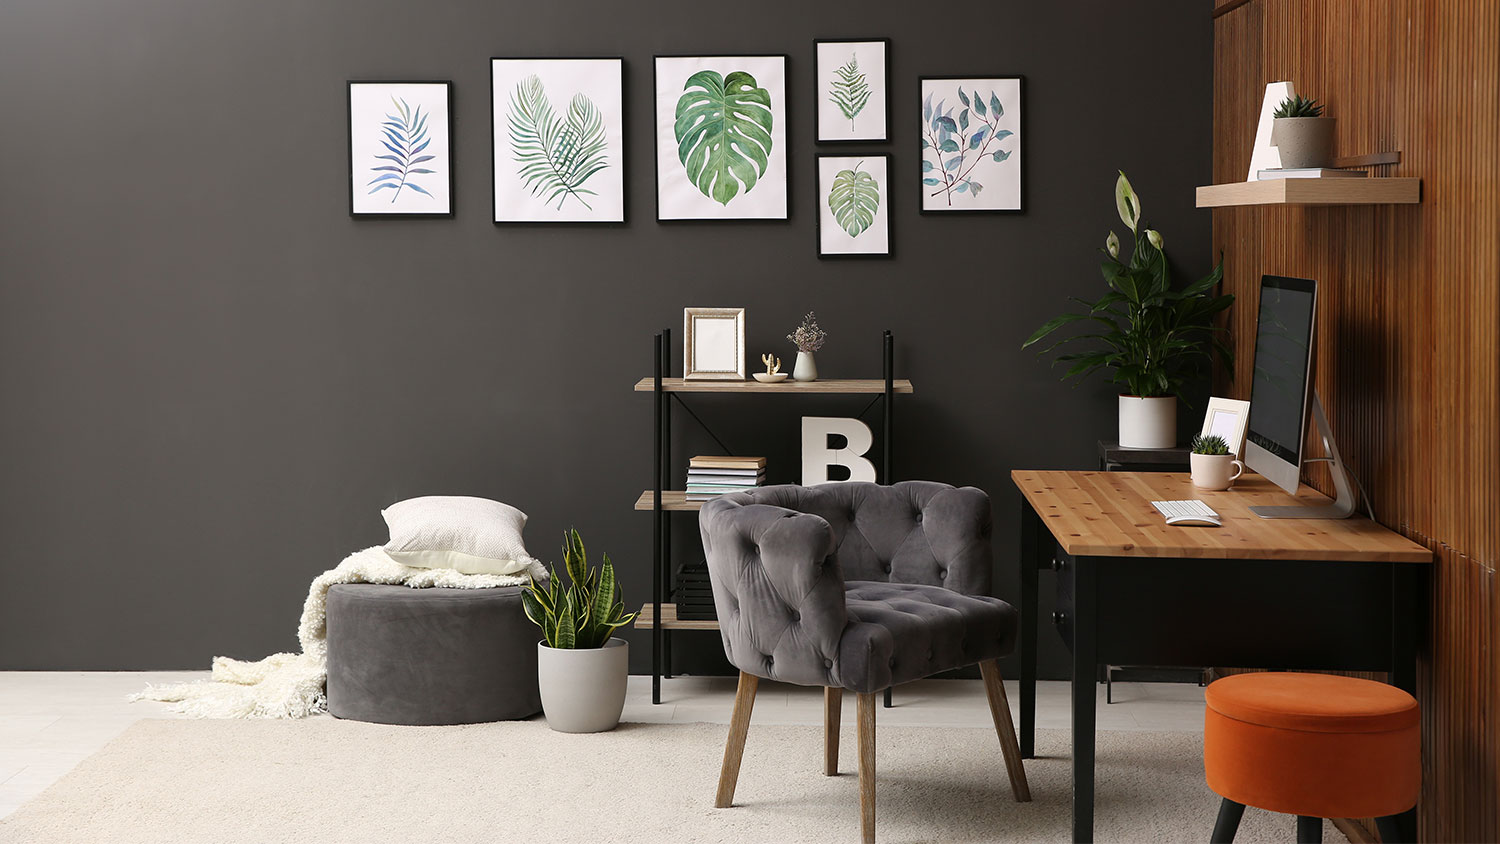 4 HOME STAGING TIPS FOR SELLING DURING COVID-19